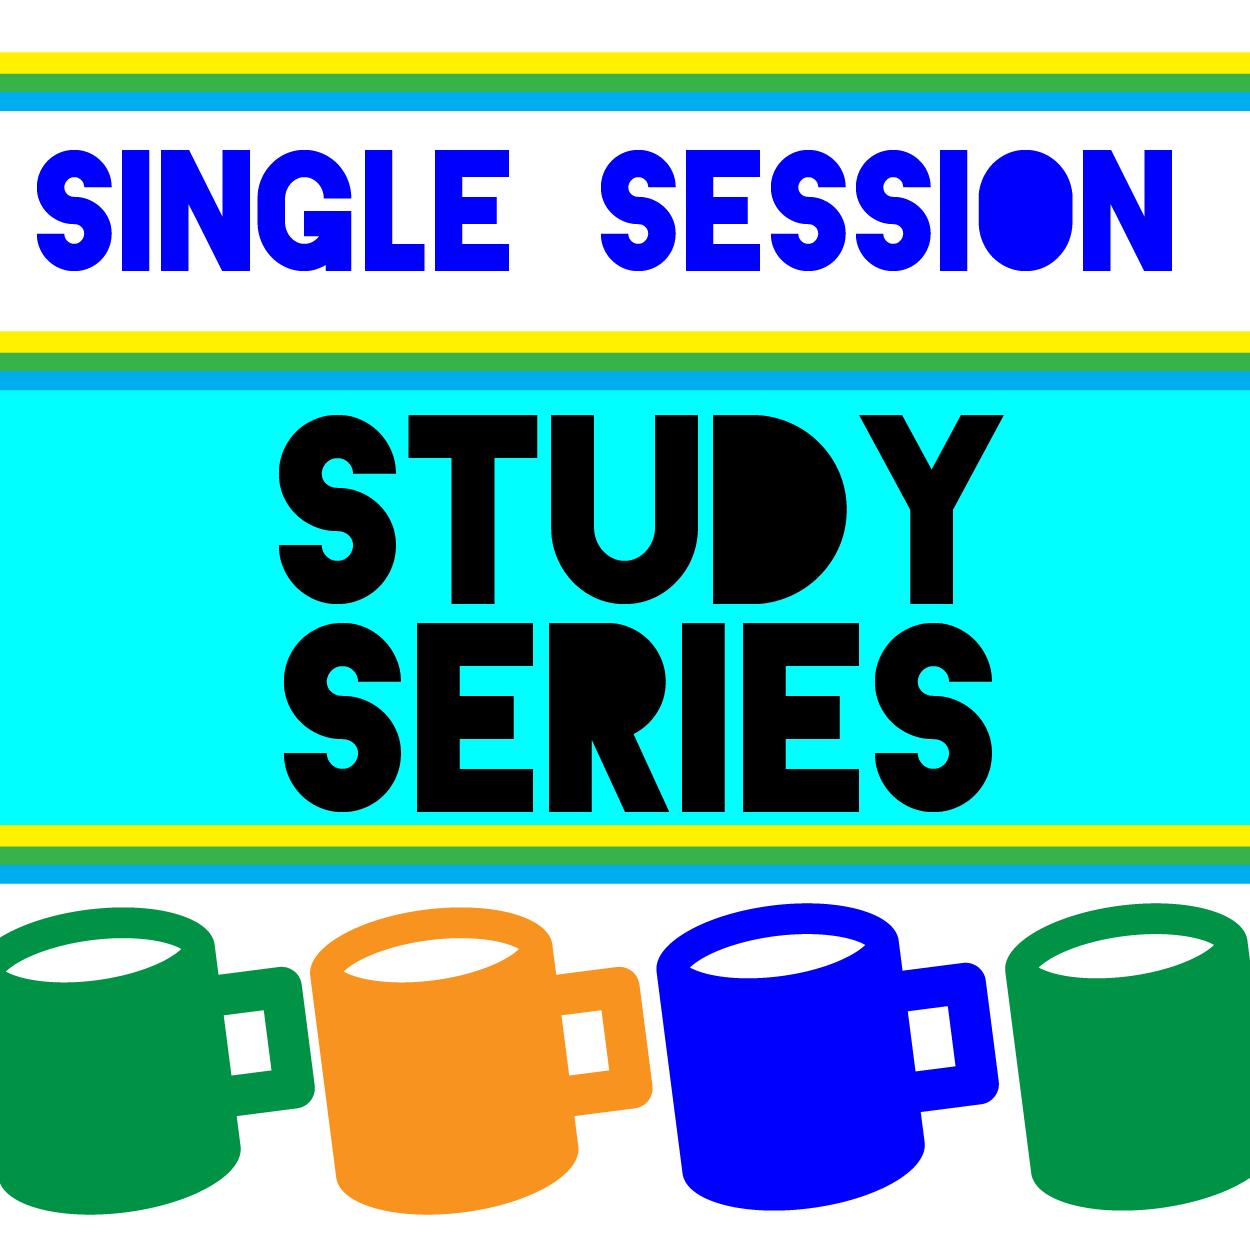 Study Series Session: Getting Readers Really Reading (For Real) – Donalyn Miller and Chad Everett